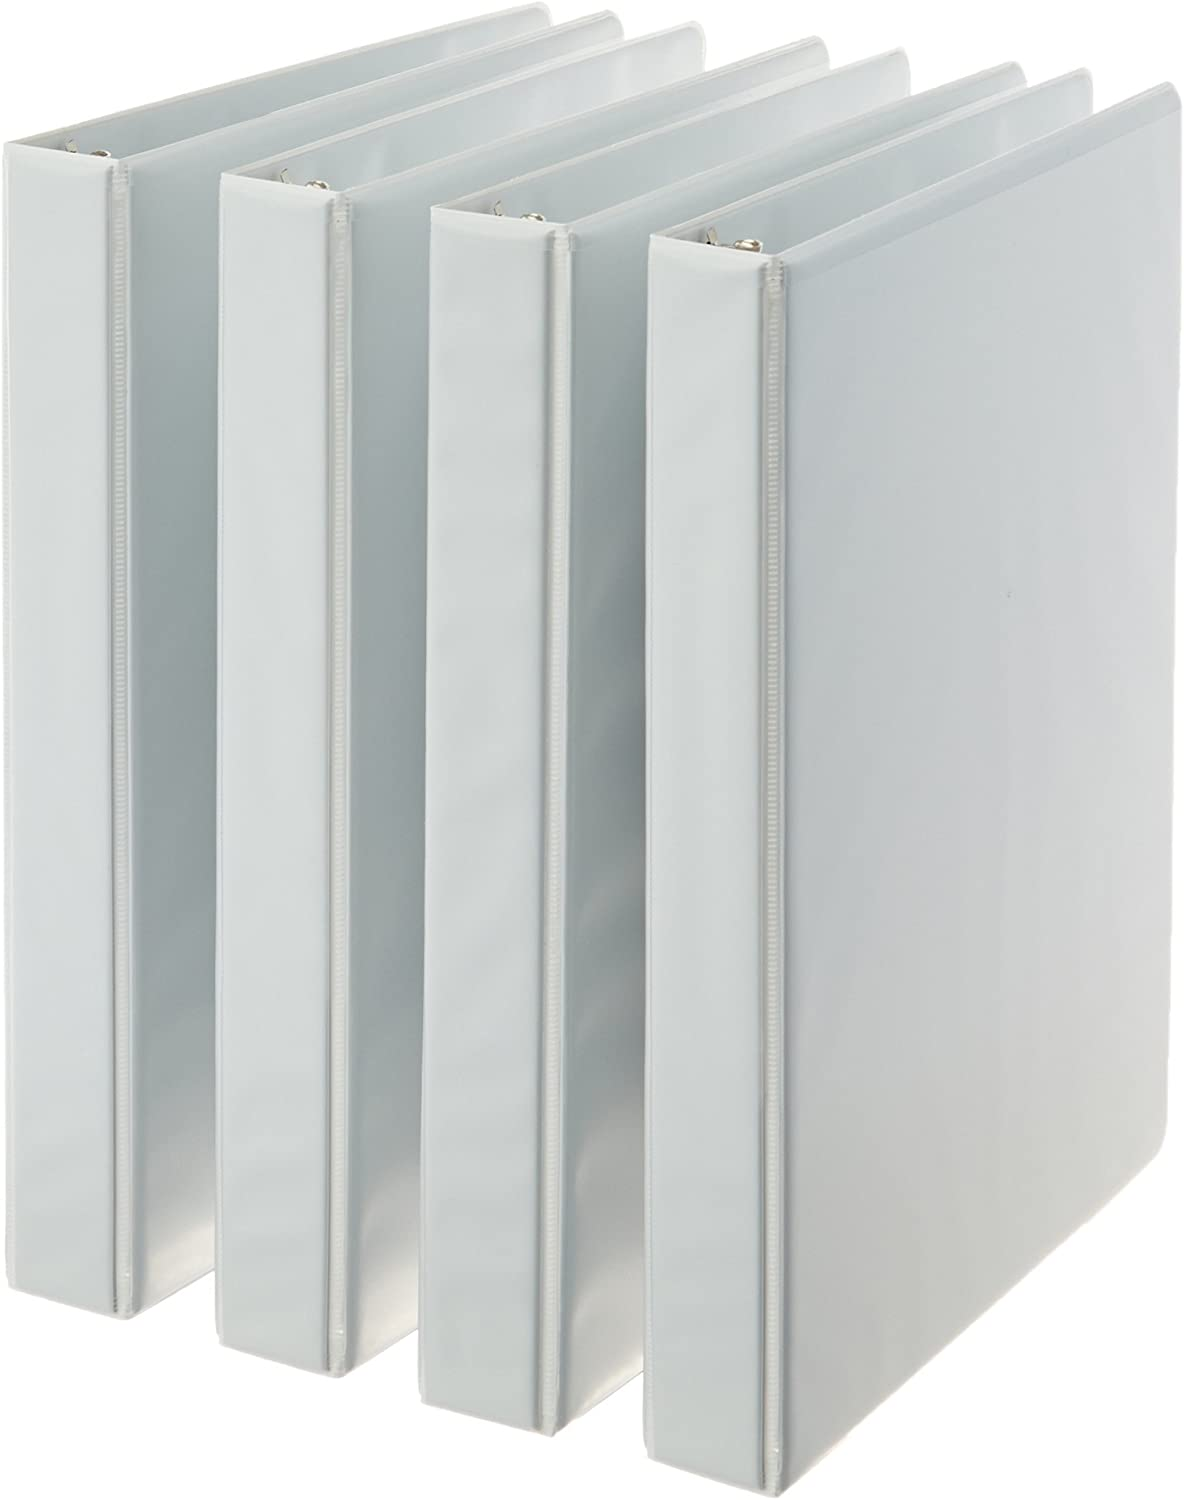 Basics 3-Ring Binder, 1 Inch - White, 4-Pack : Office Products